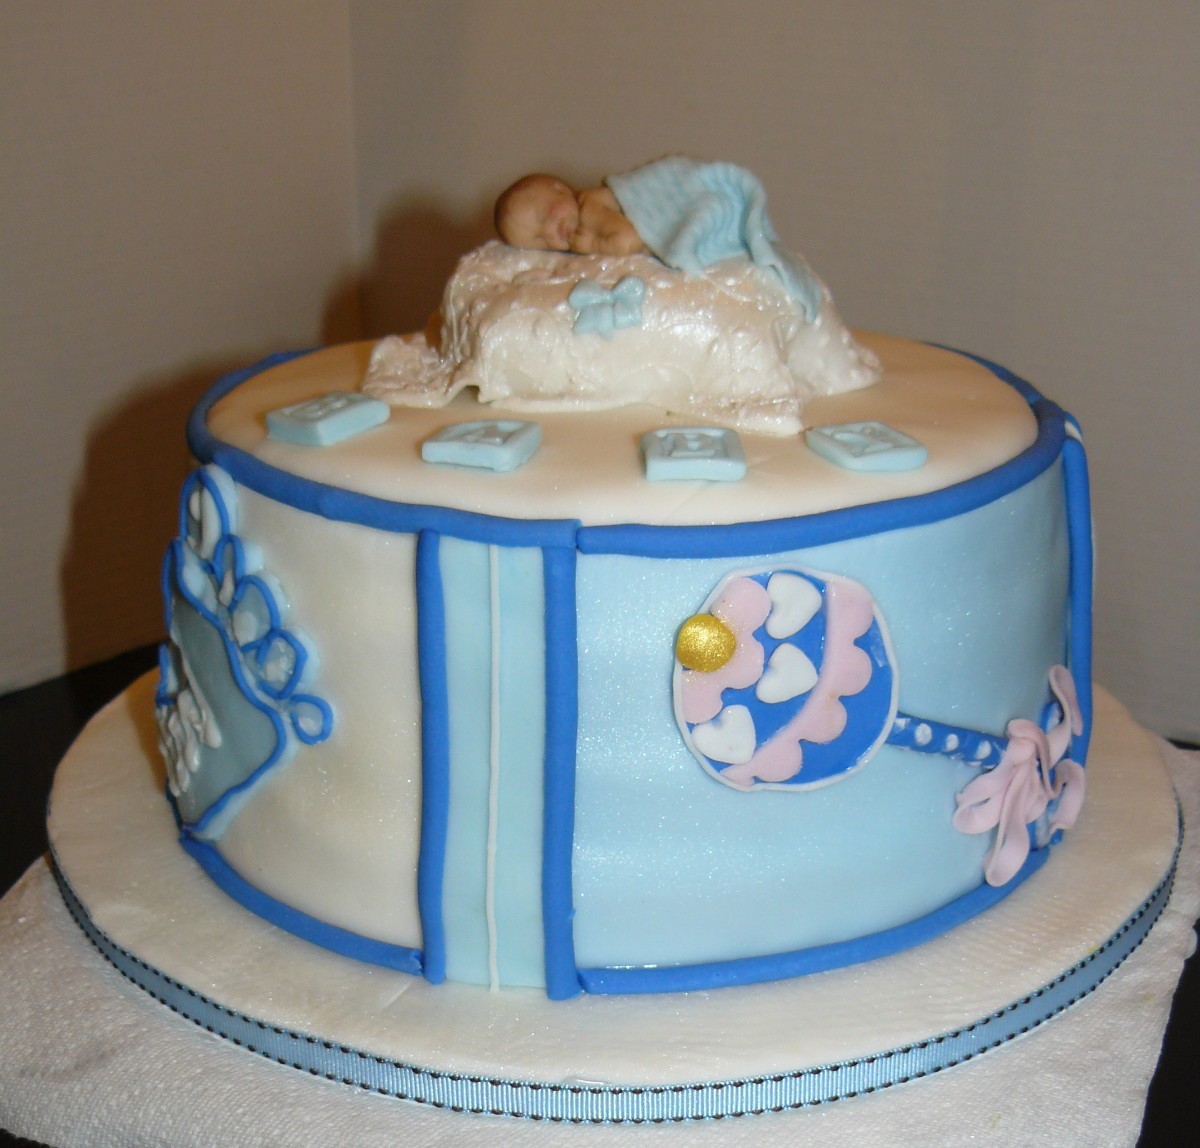 Pictures Of Baby Shower Cake Designs : 10 Gorgeous Cake Designs For Baby Shower CAKE DESIGN AND ...